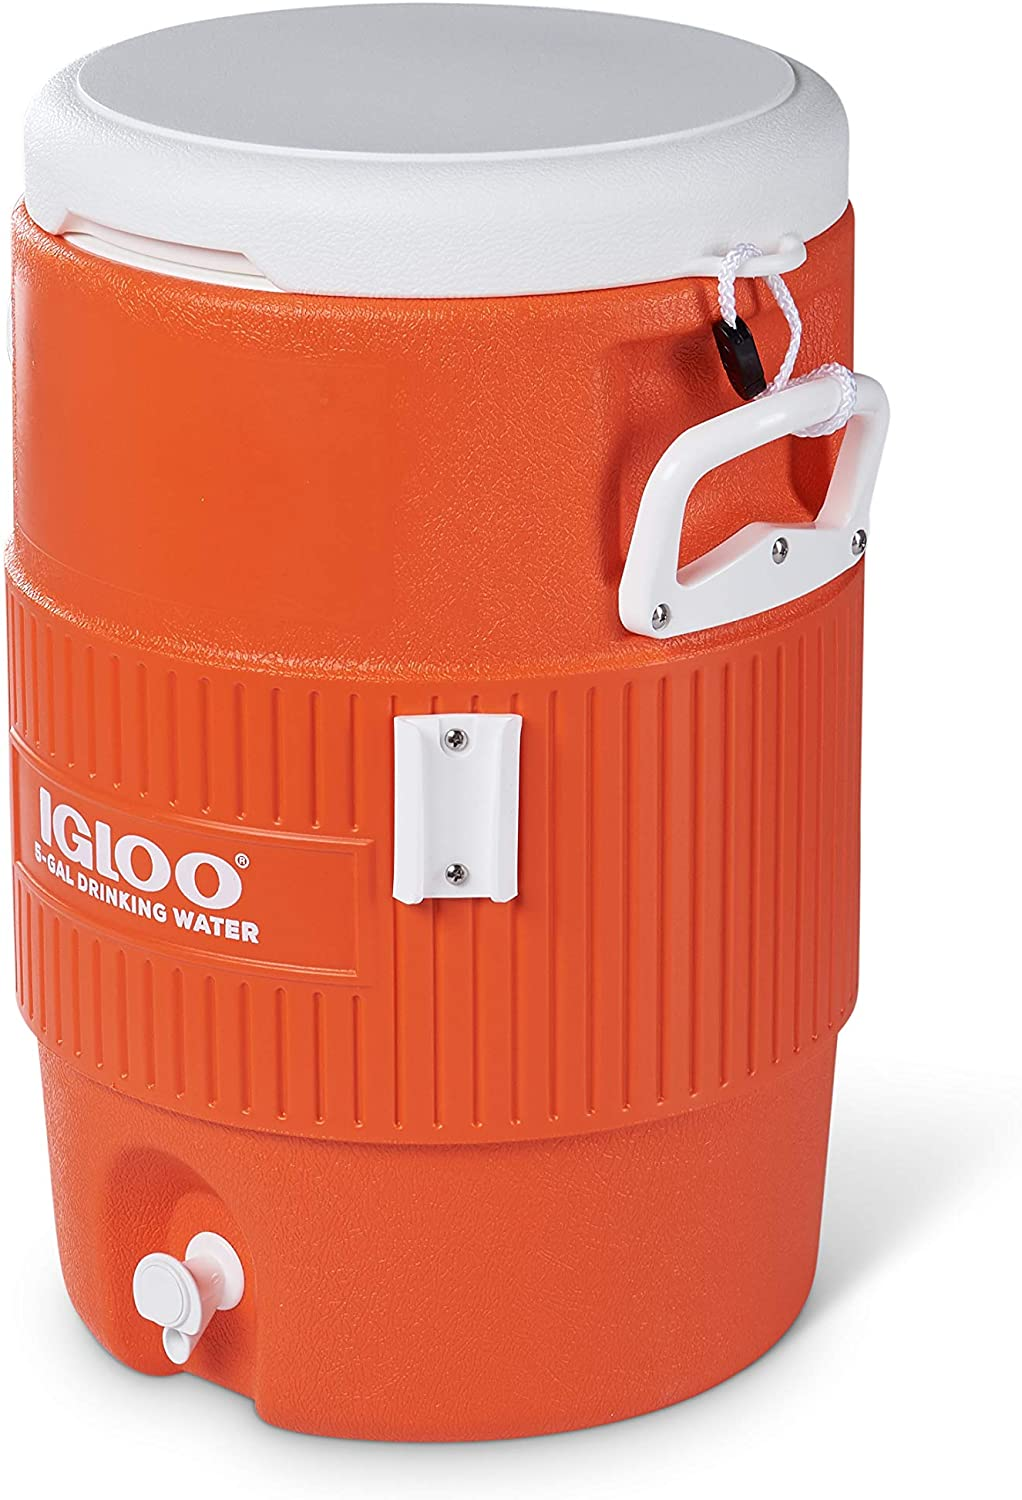 Igloo Portable Sports Cooler